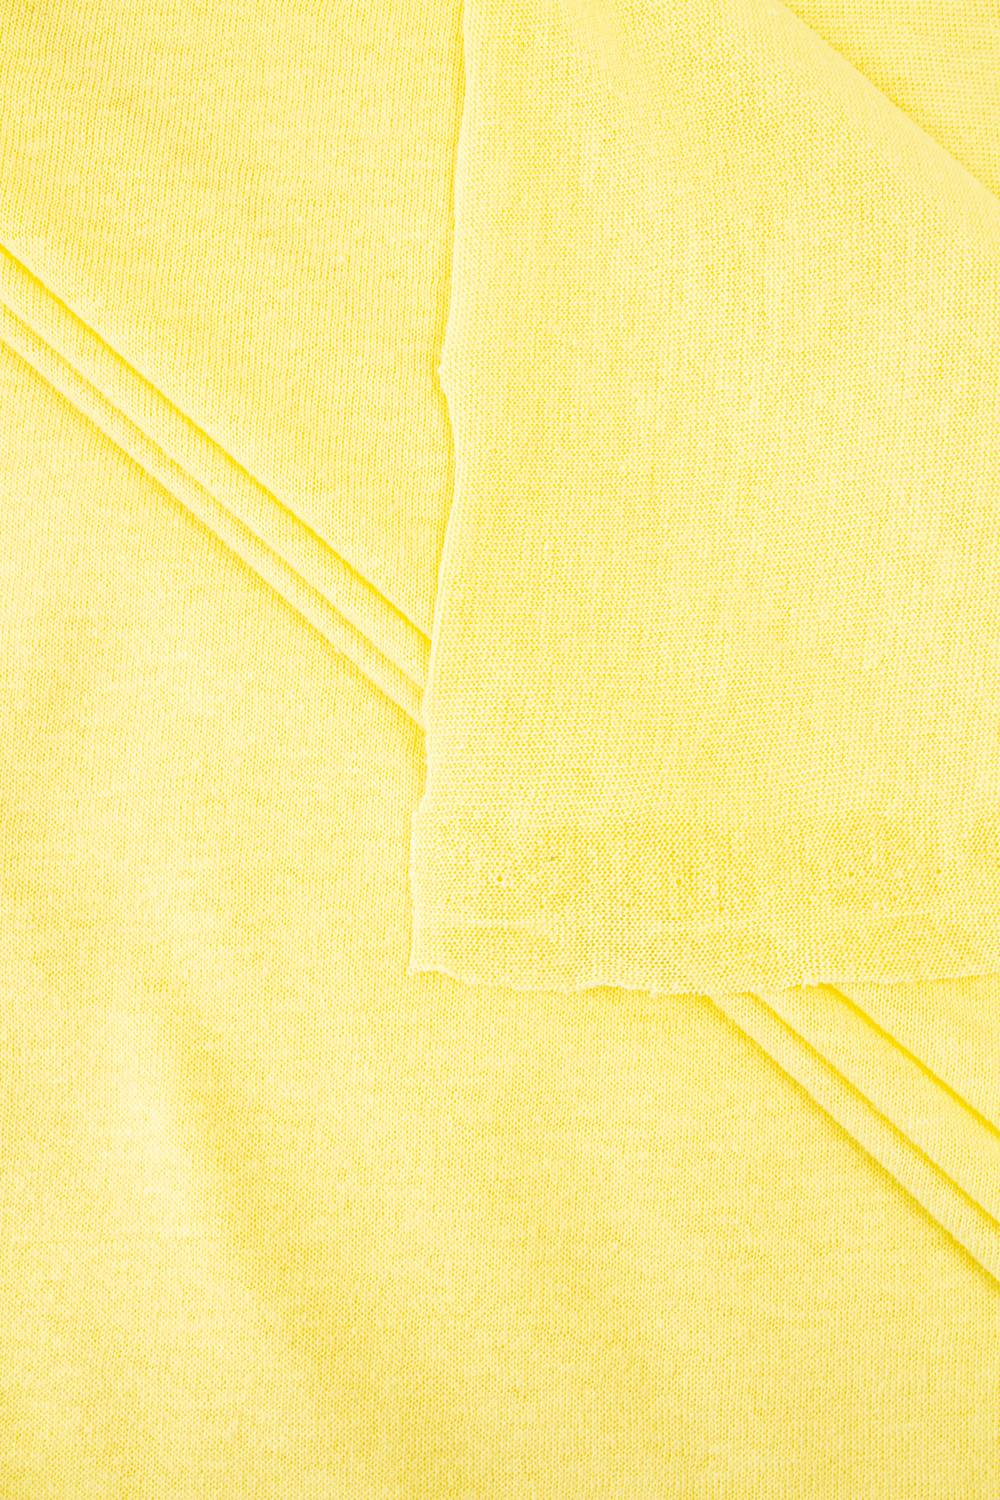 Knit - Jersey - Canary Yellow - 175 cm - 100 g/m2